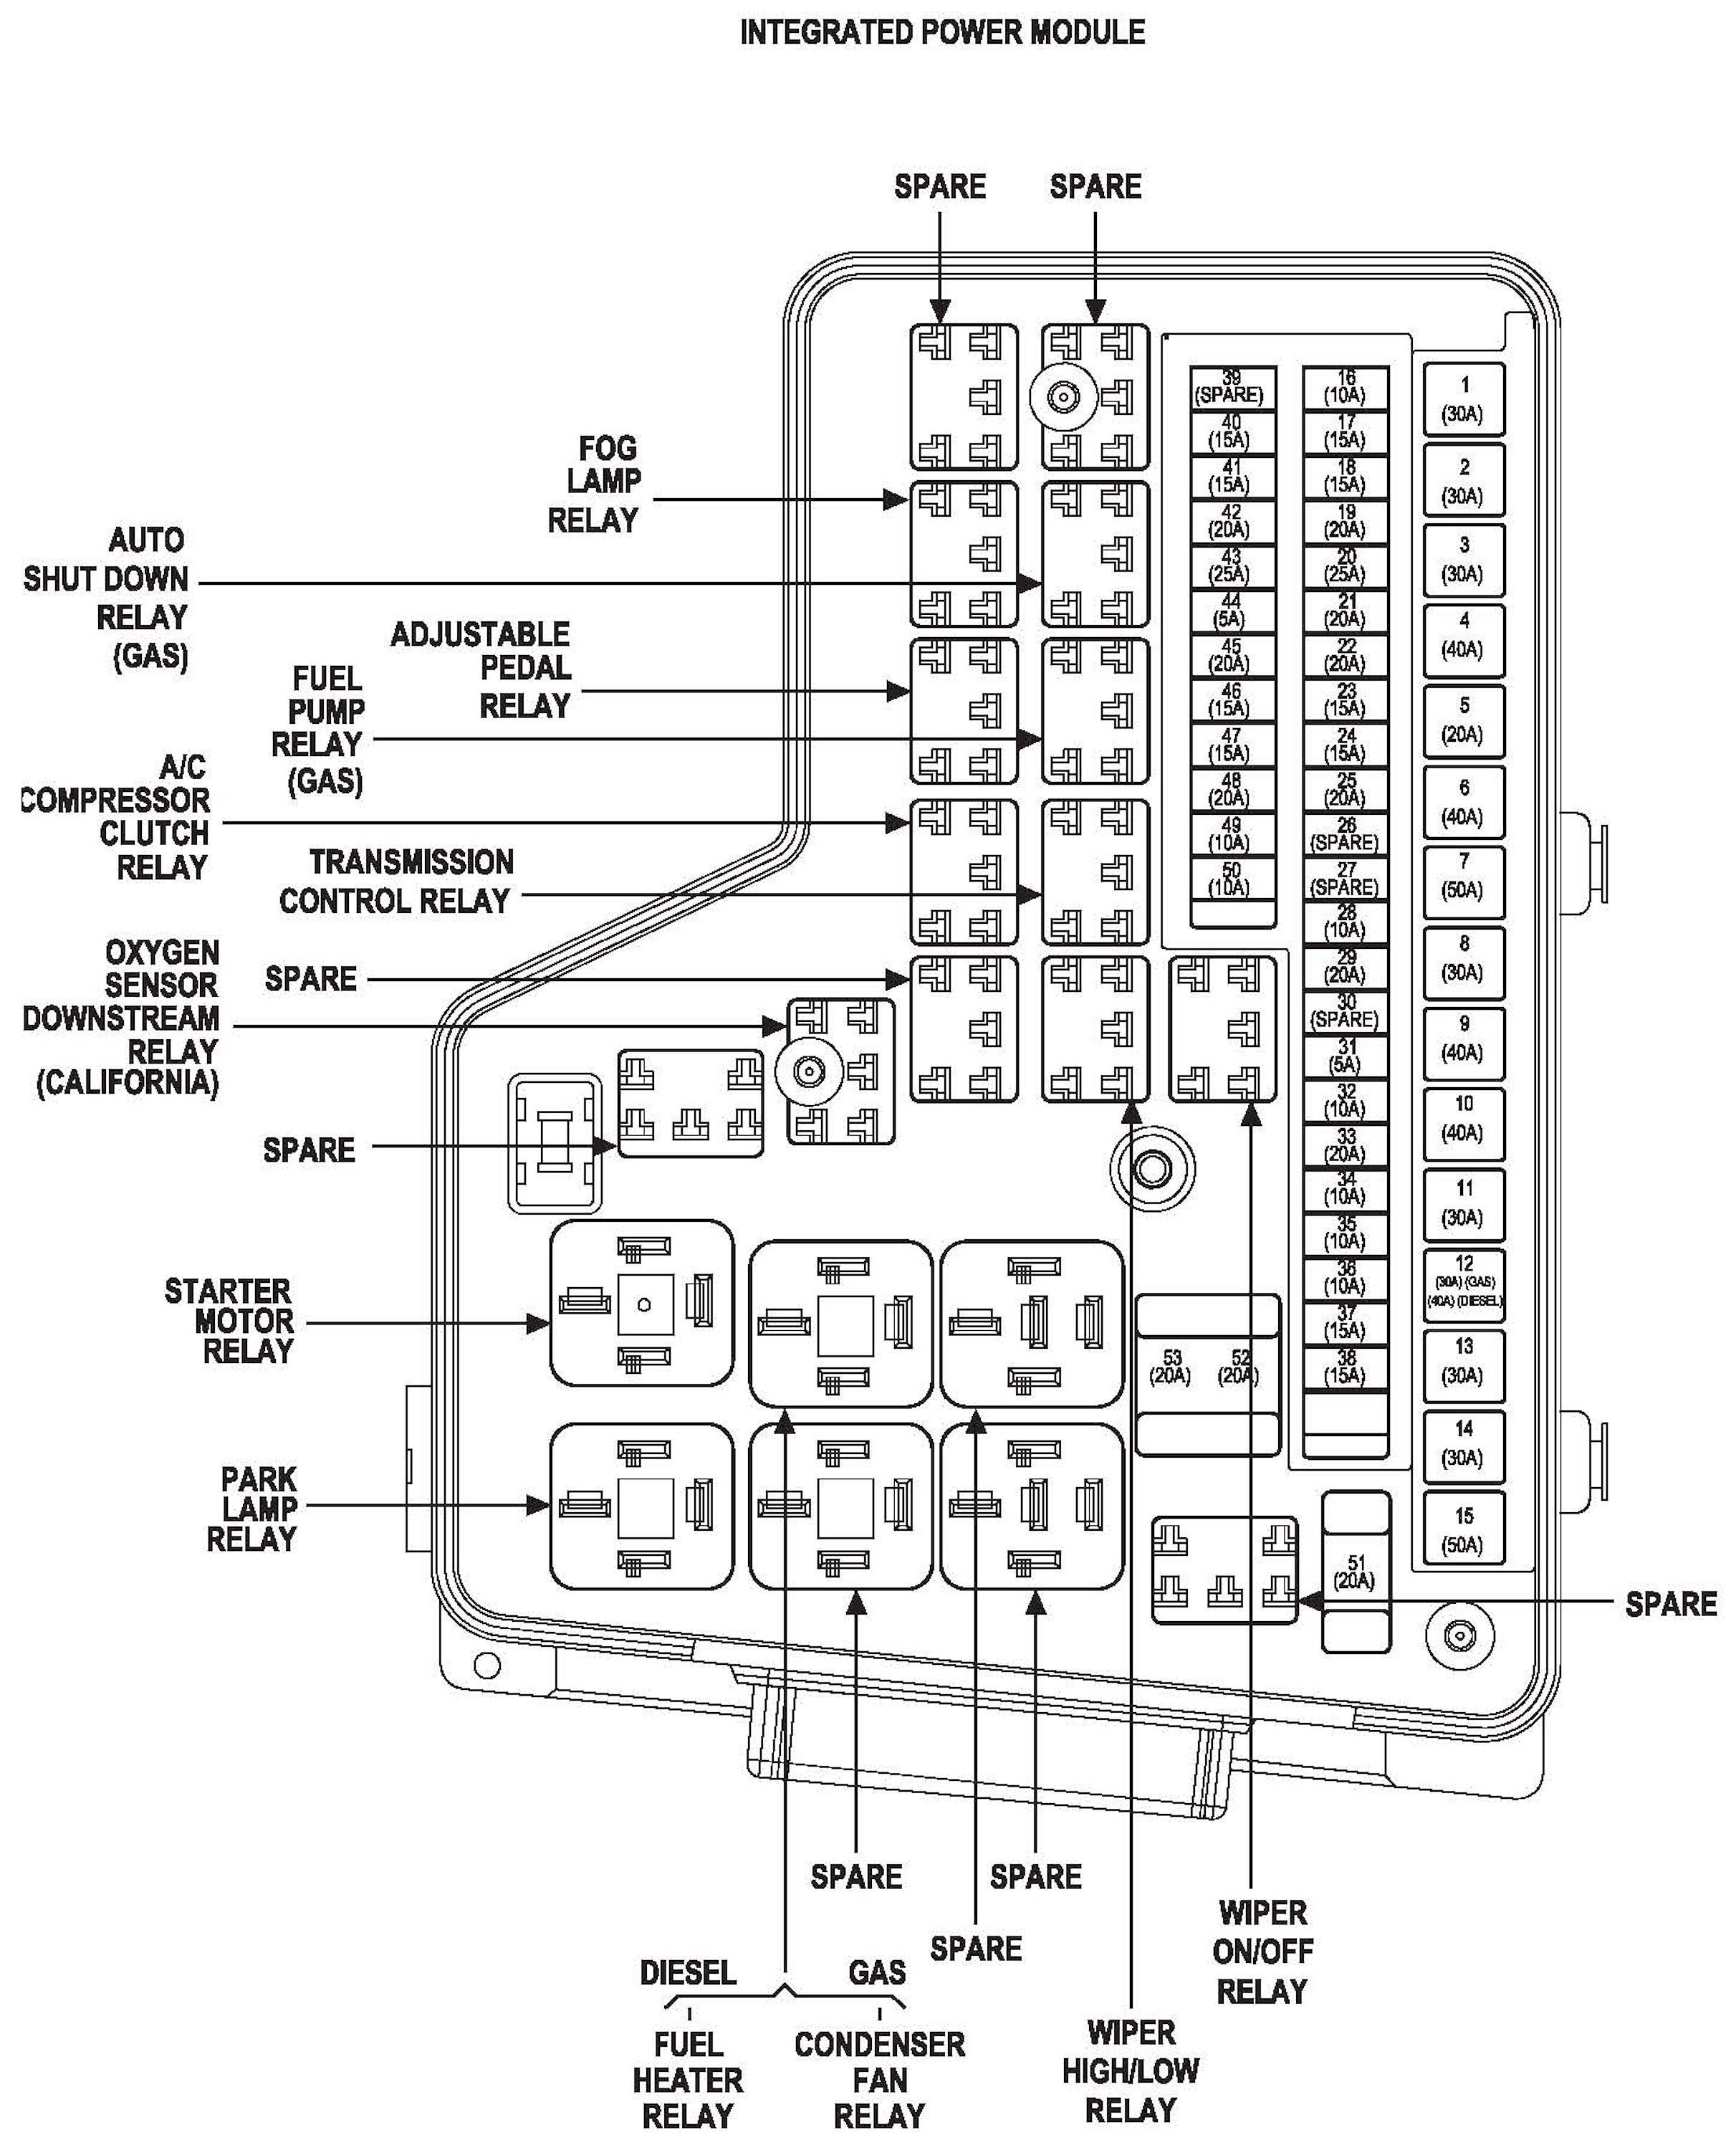 2002 Dodge Ram Wiring Diagram from i.pinimg.com